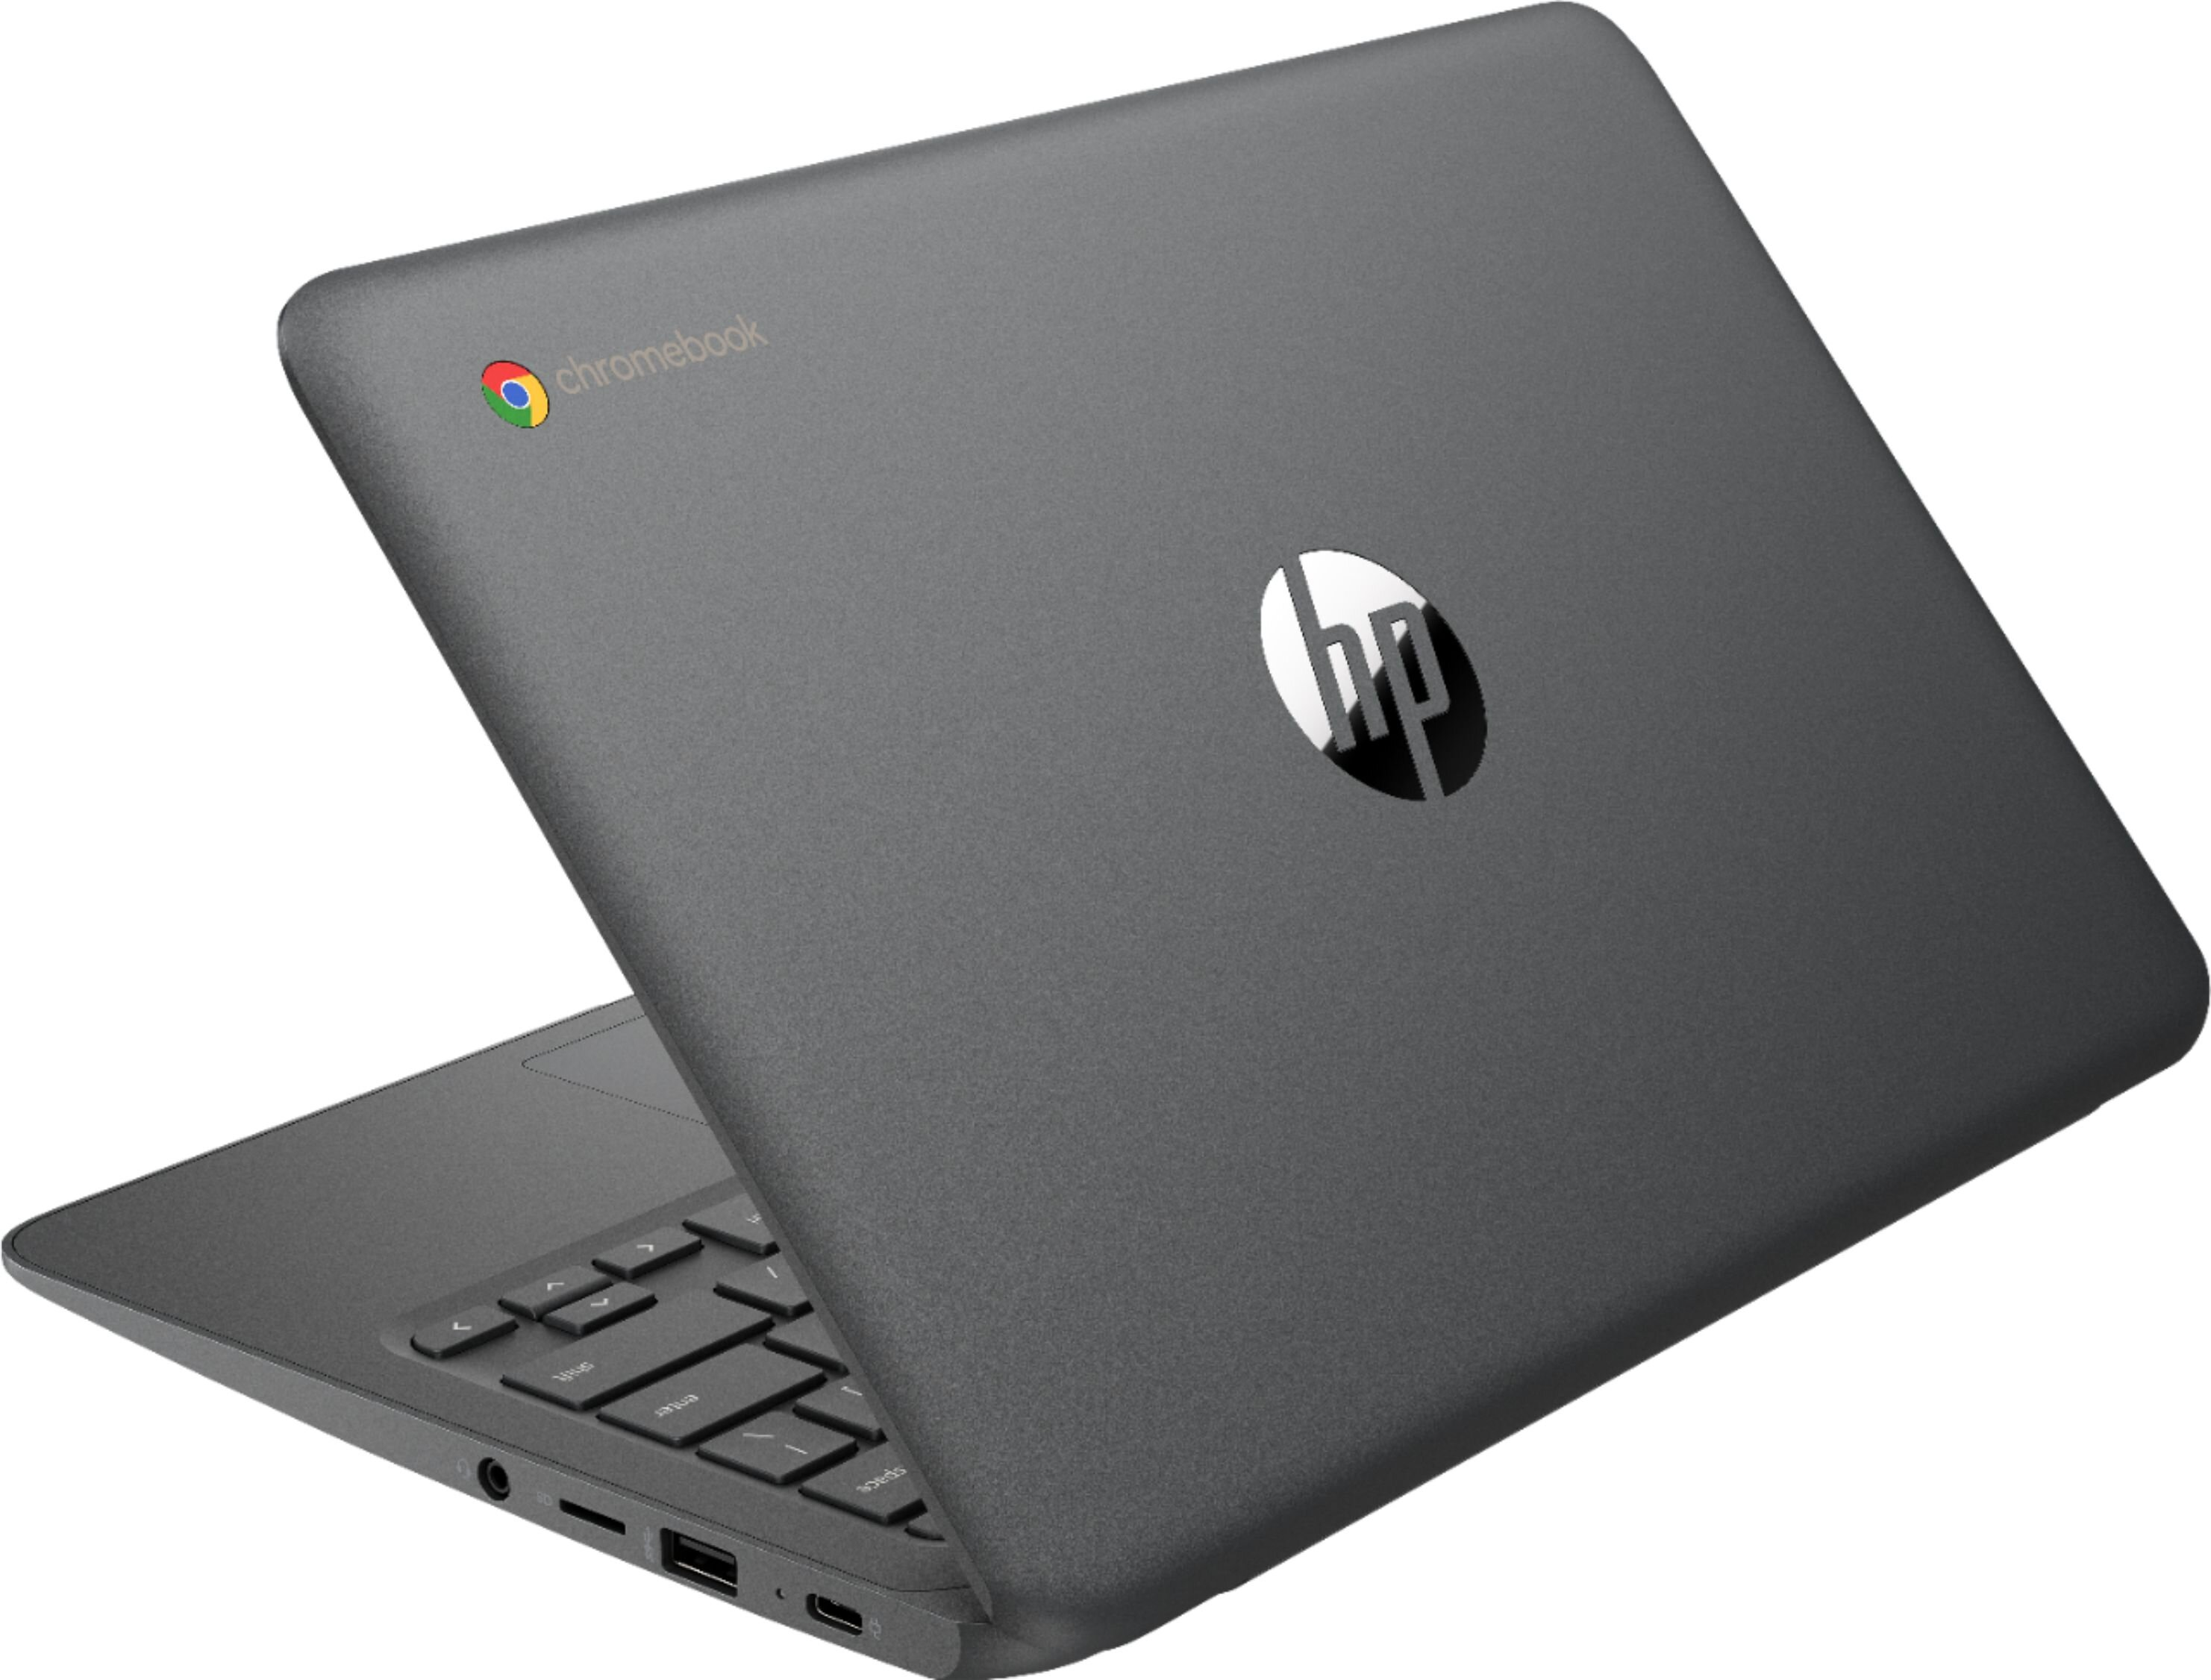 "HP - 11.6"" Chromebook - Intel Celeron - 4GB Memory - 32GB eMMC Flash Memory - Ash Gray"